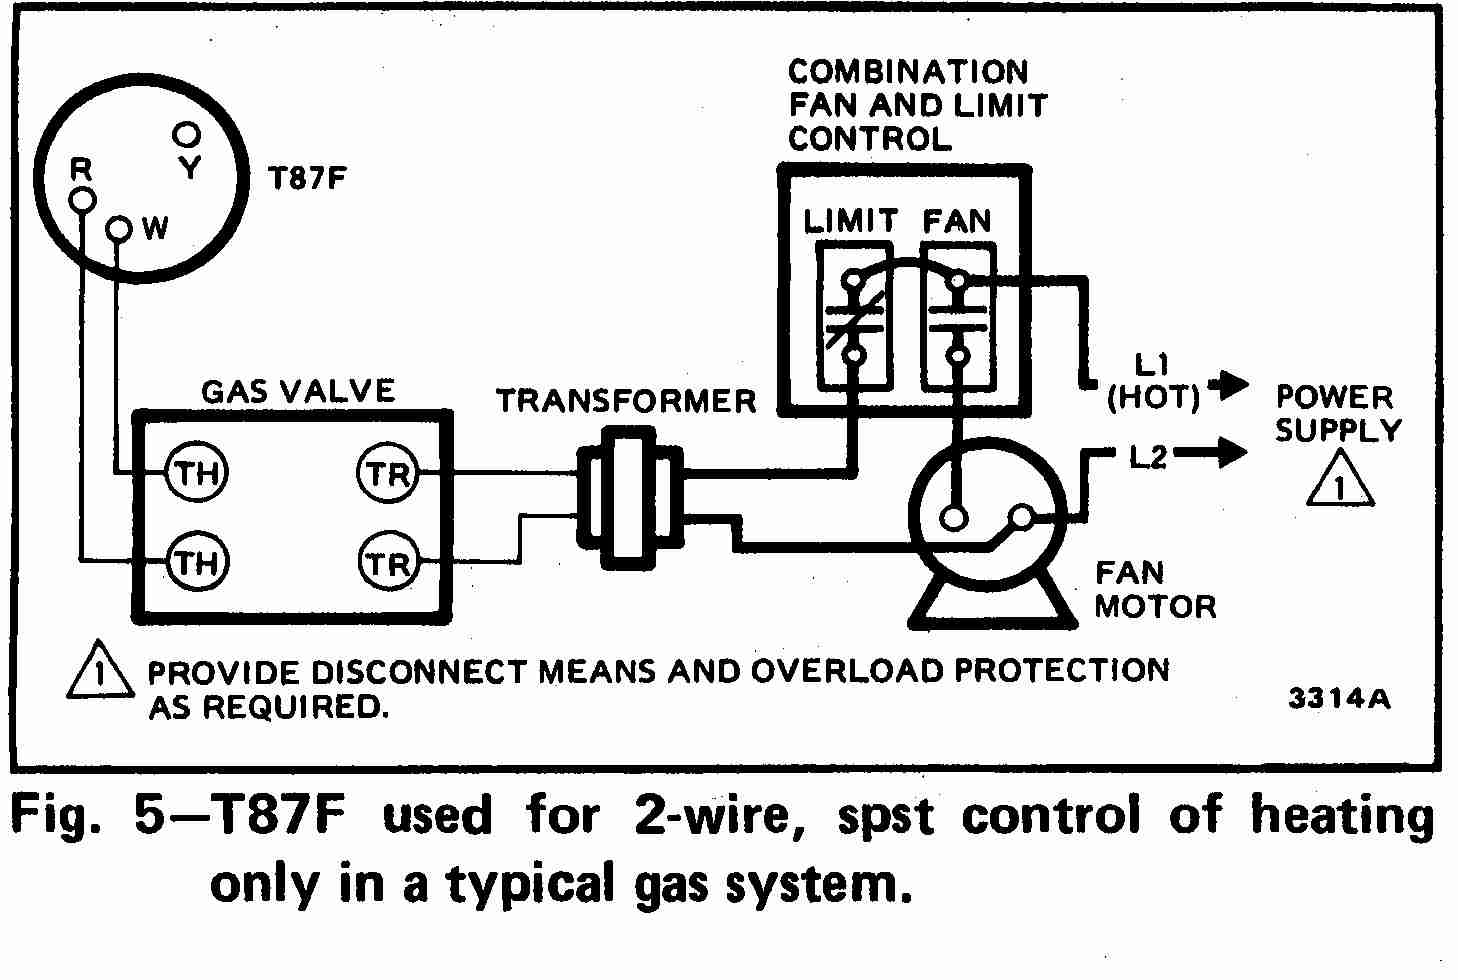 TT_T87F_0002_2Wg_DJF zone valve wiring installation & instructions guide to heating thermostat wiring diagram at readyjetset.co